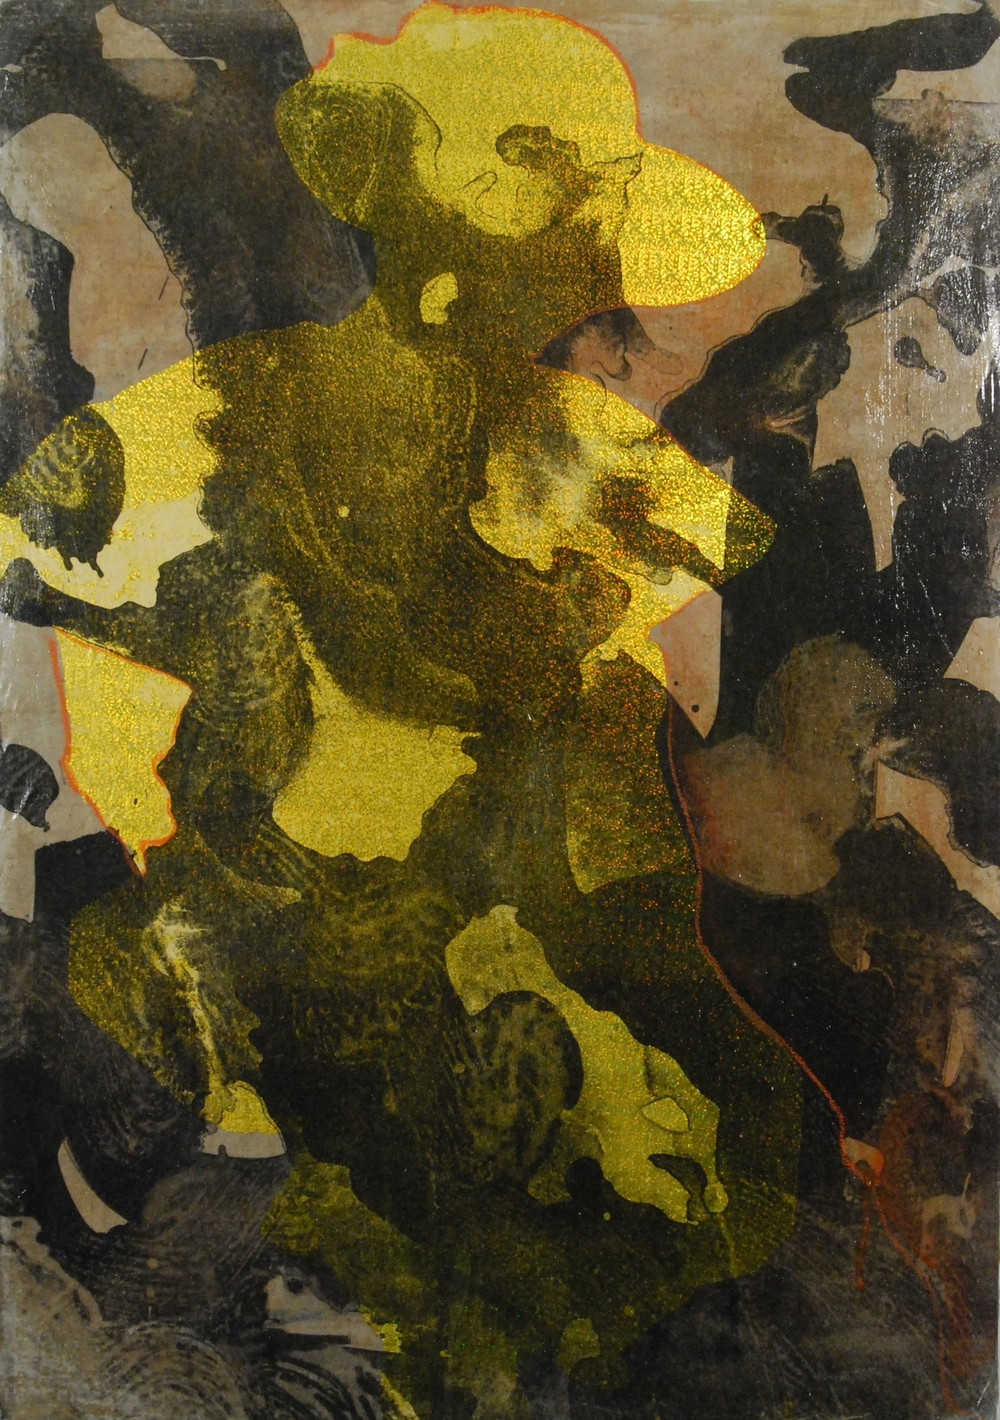 Gold, Stone lithograph and paper collage on linen, 34x24 inches, 2014